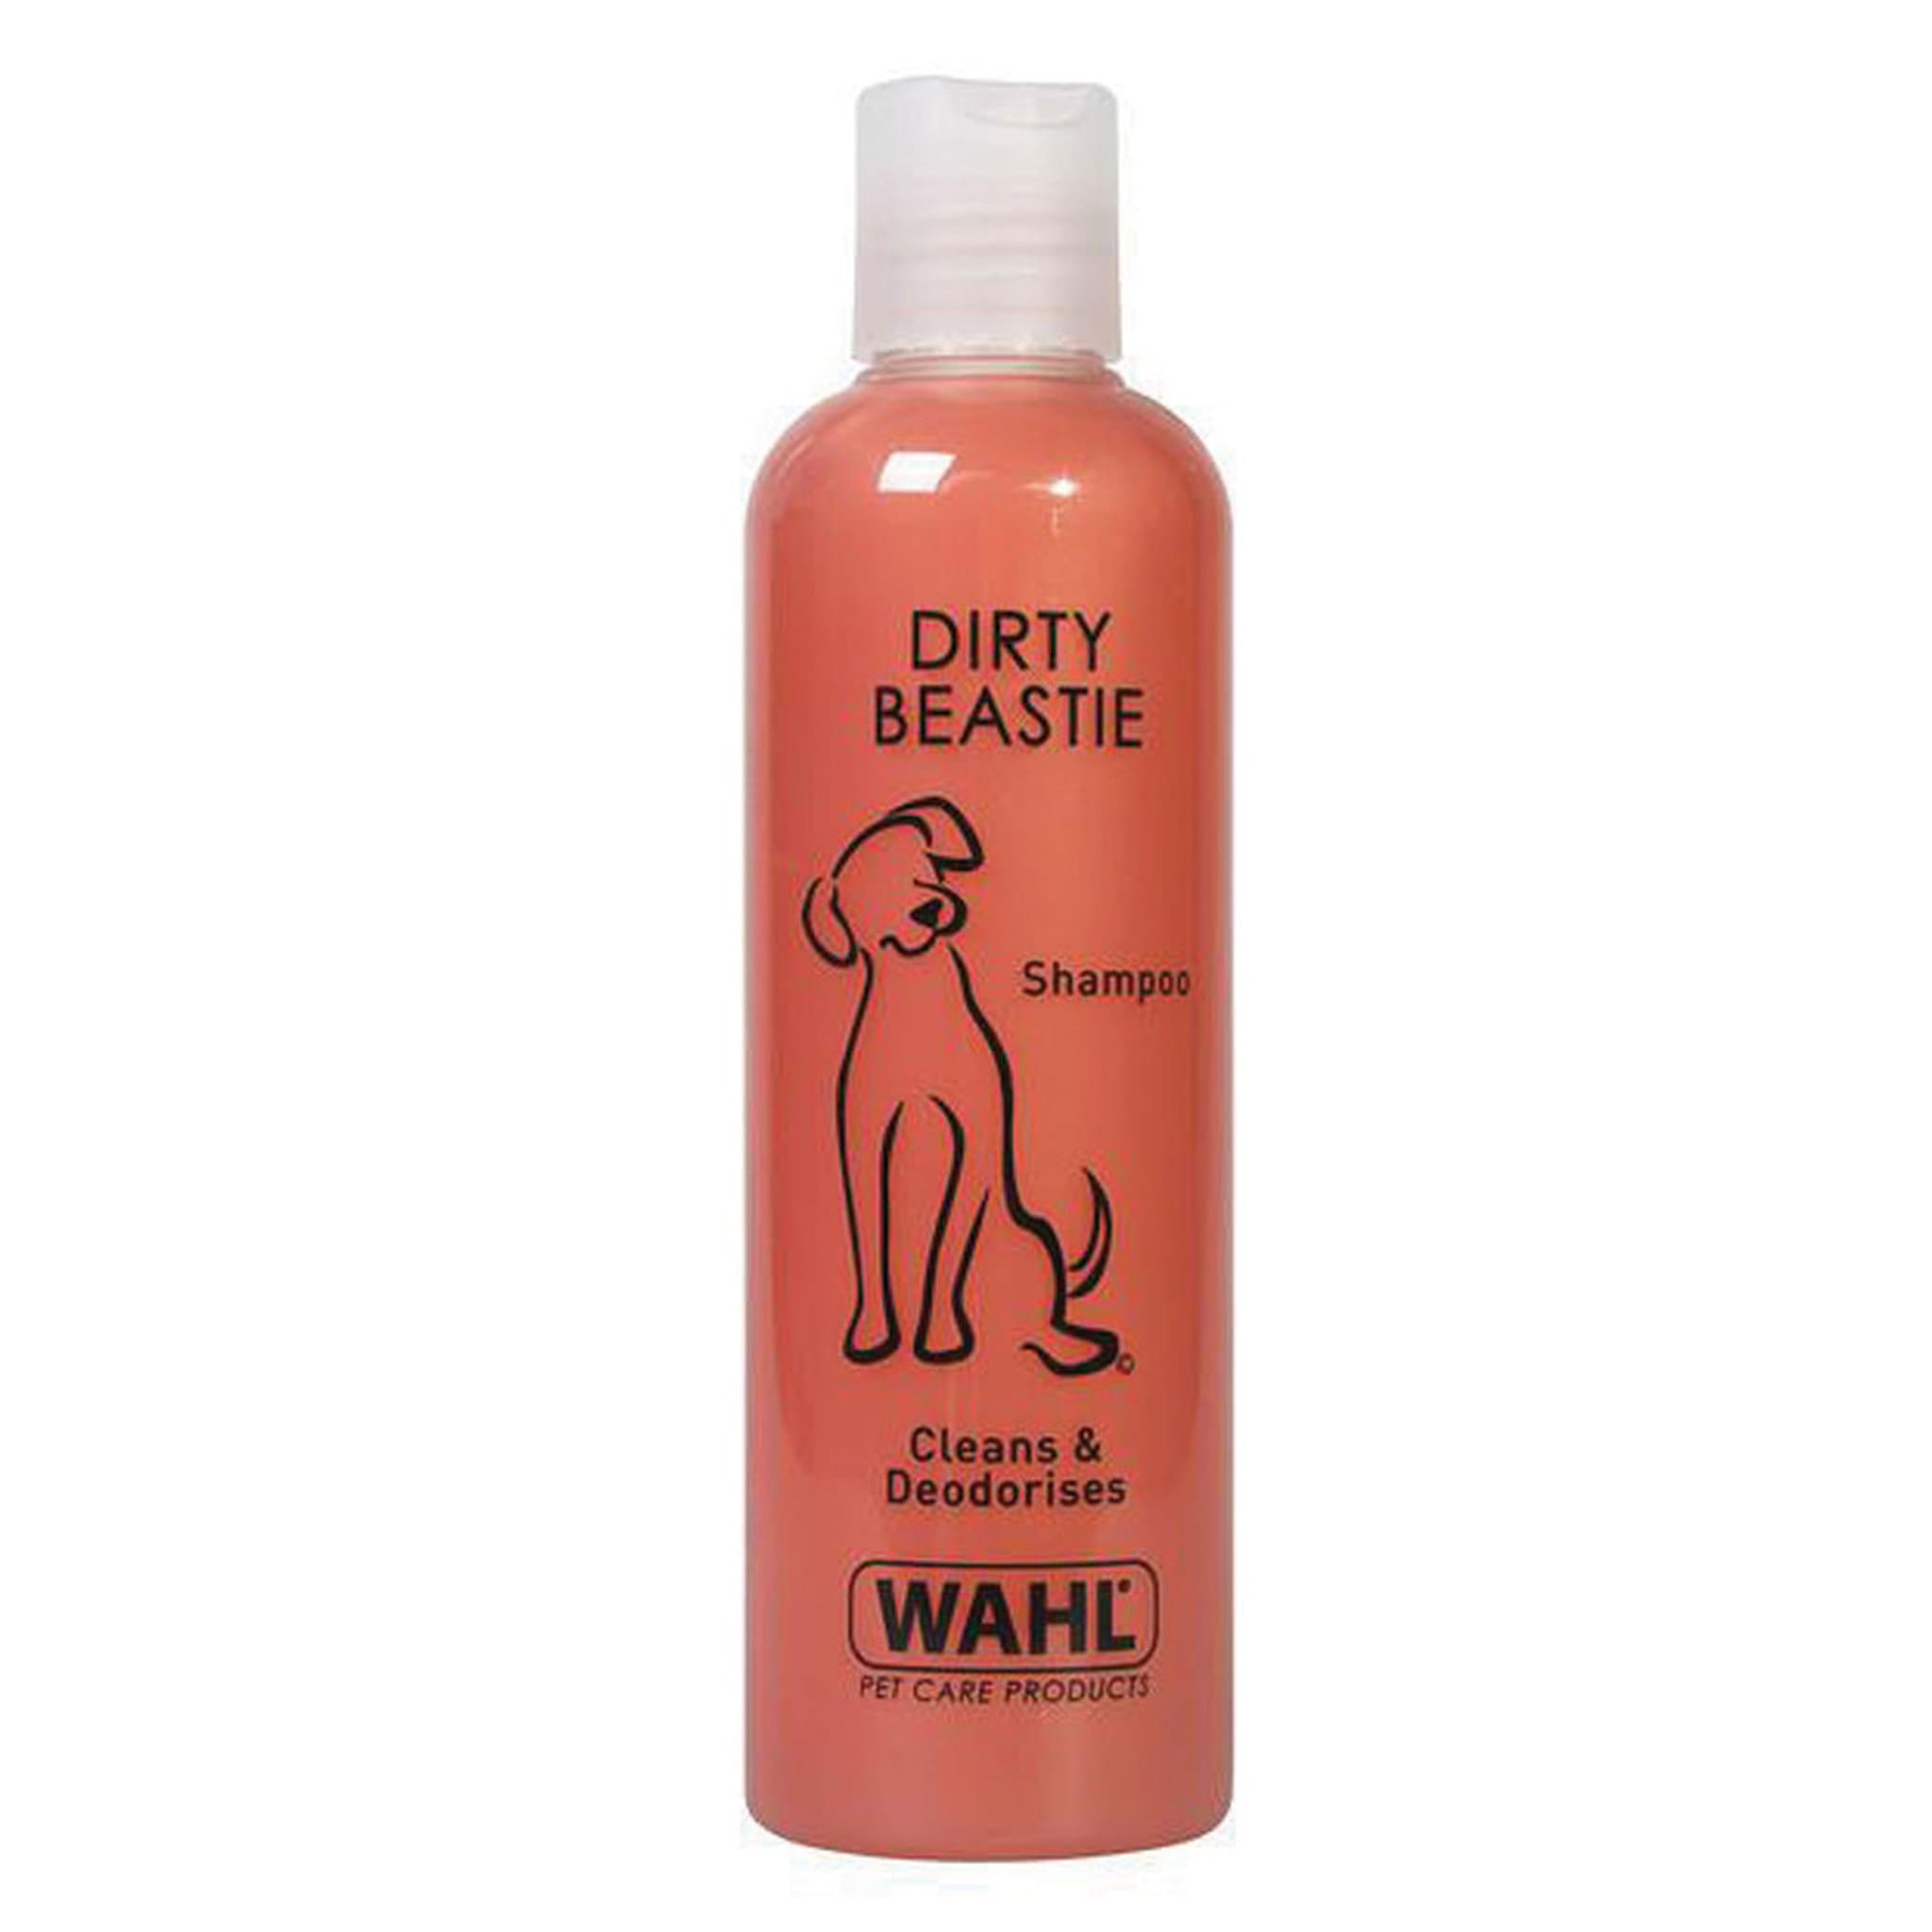 Wahl Dirty Beastie Dog Shampoo 250ml 1855